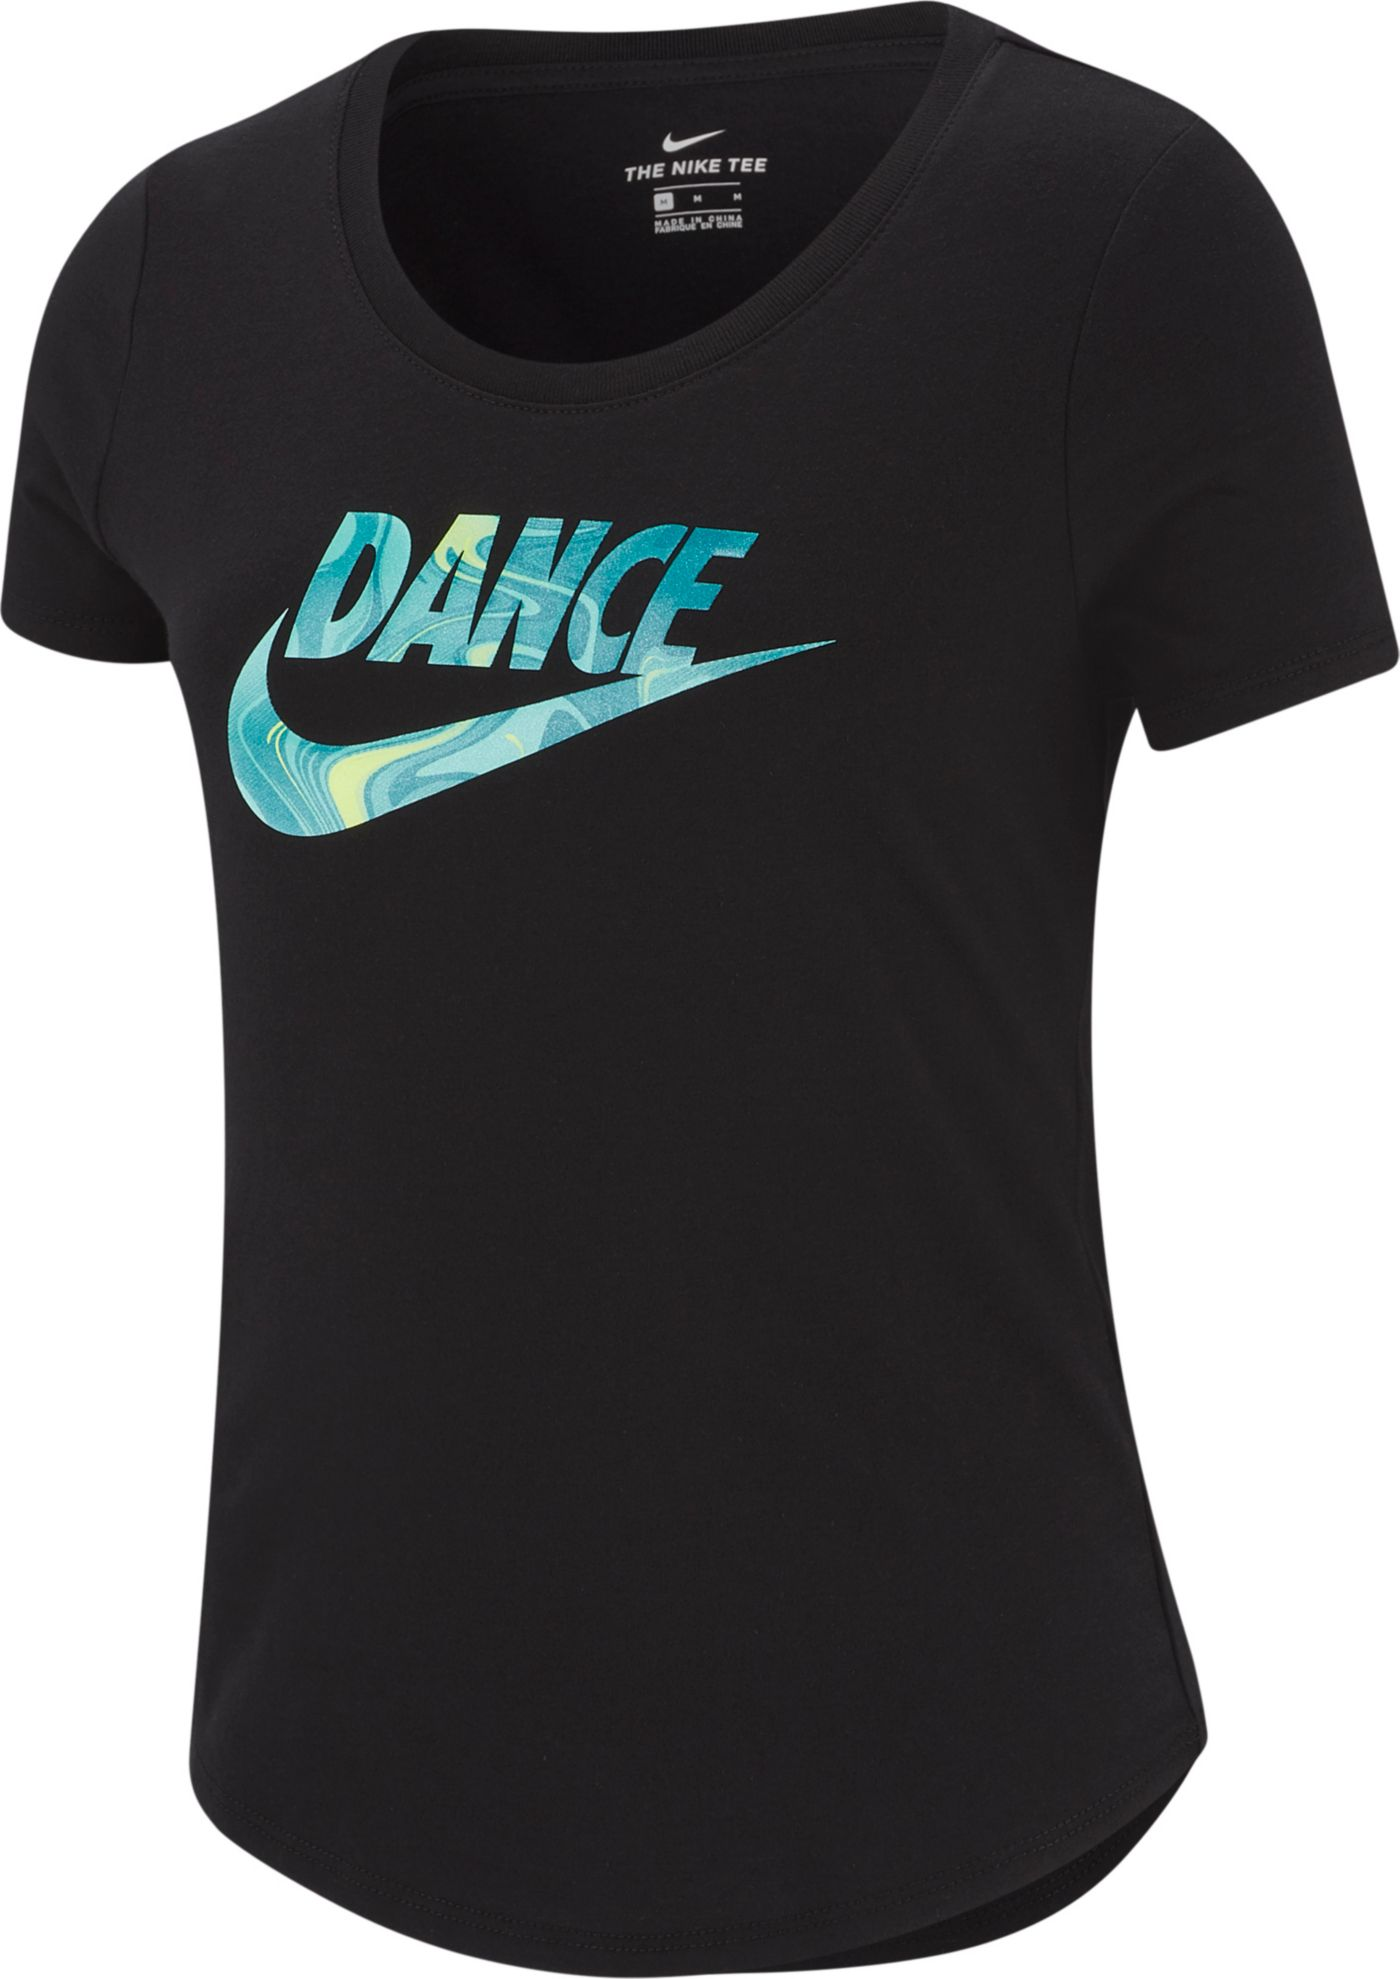 Nike Girls' Dri-FIT Dance Graphic Tee